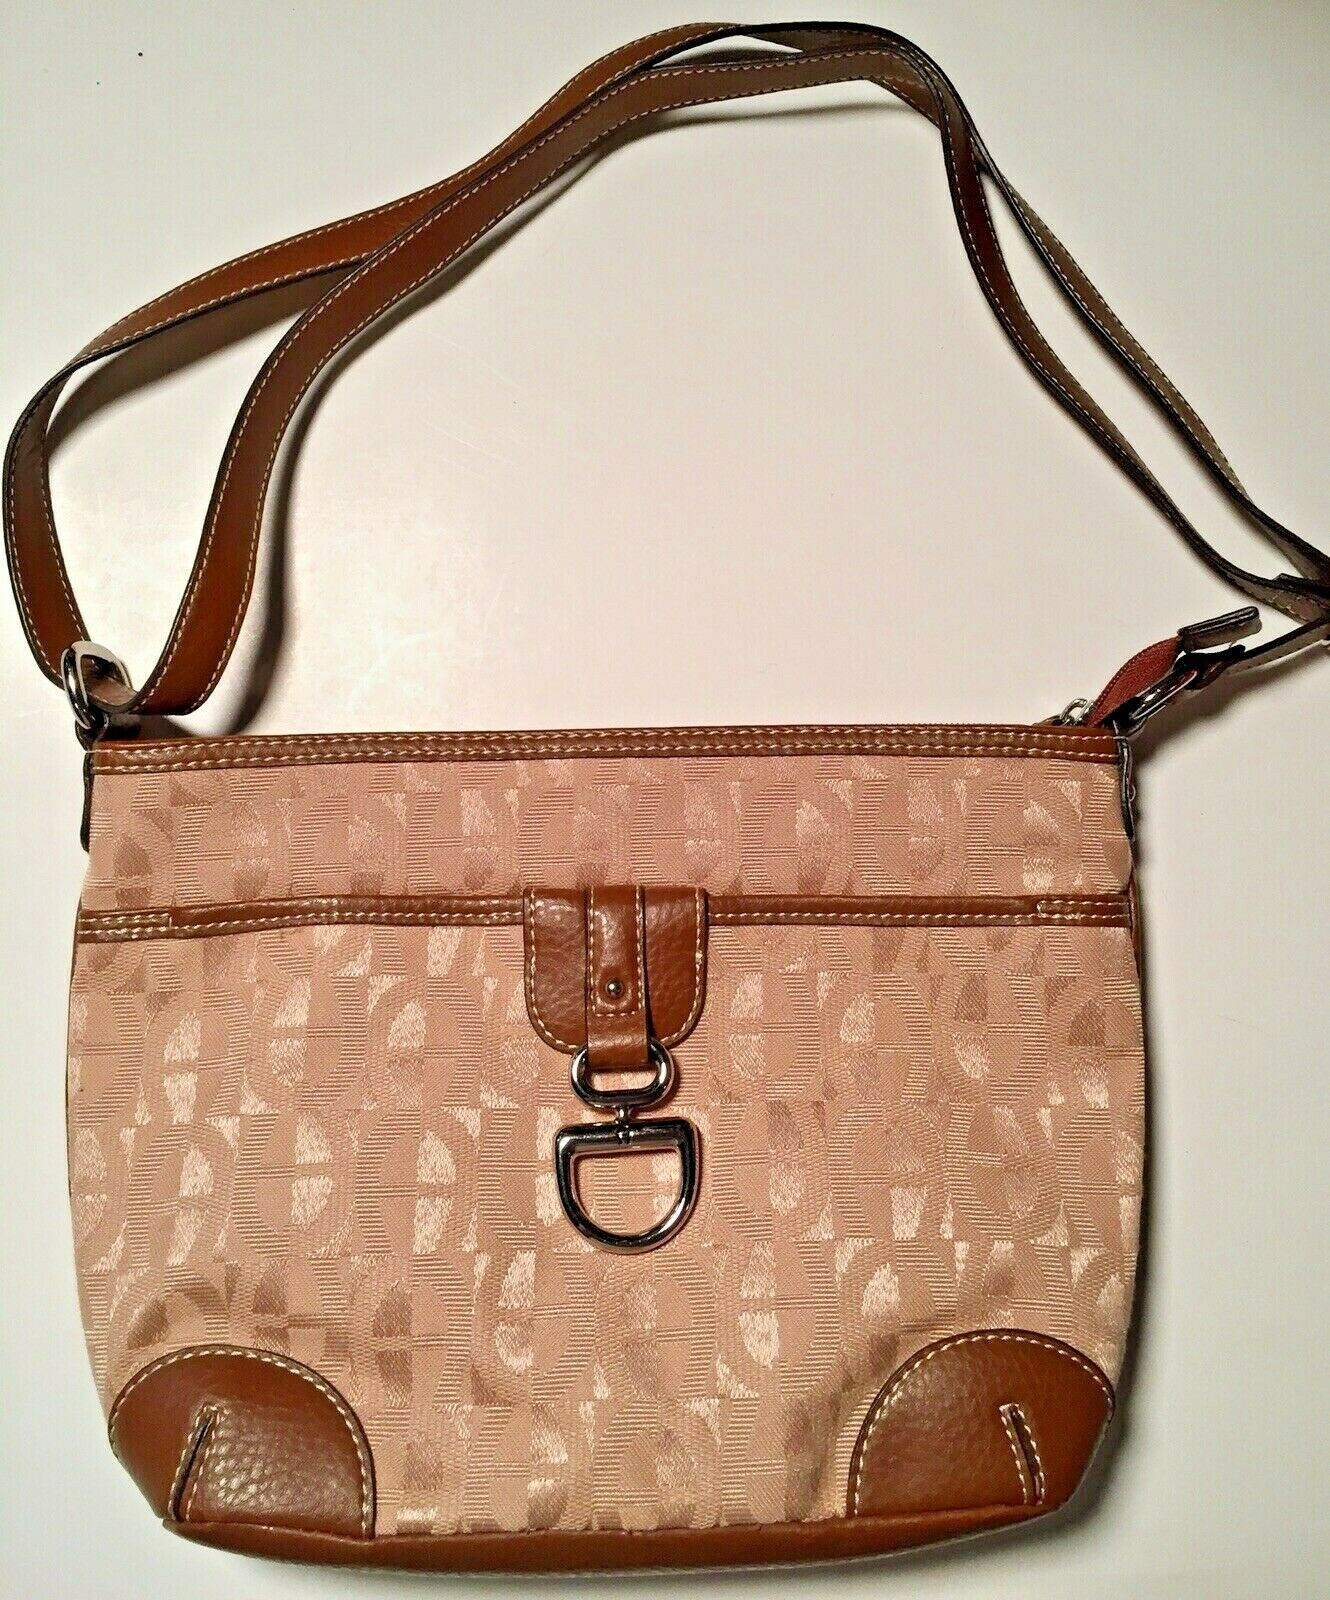 Etienne Aigner Shoulder Bag 1 Customer